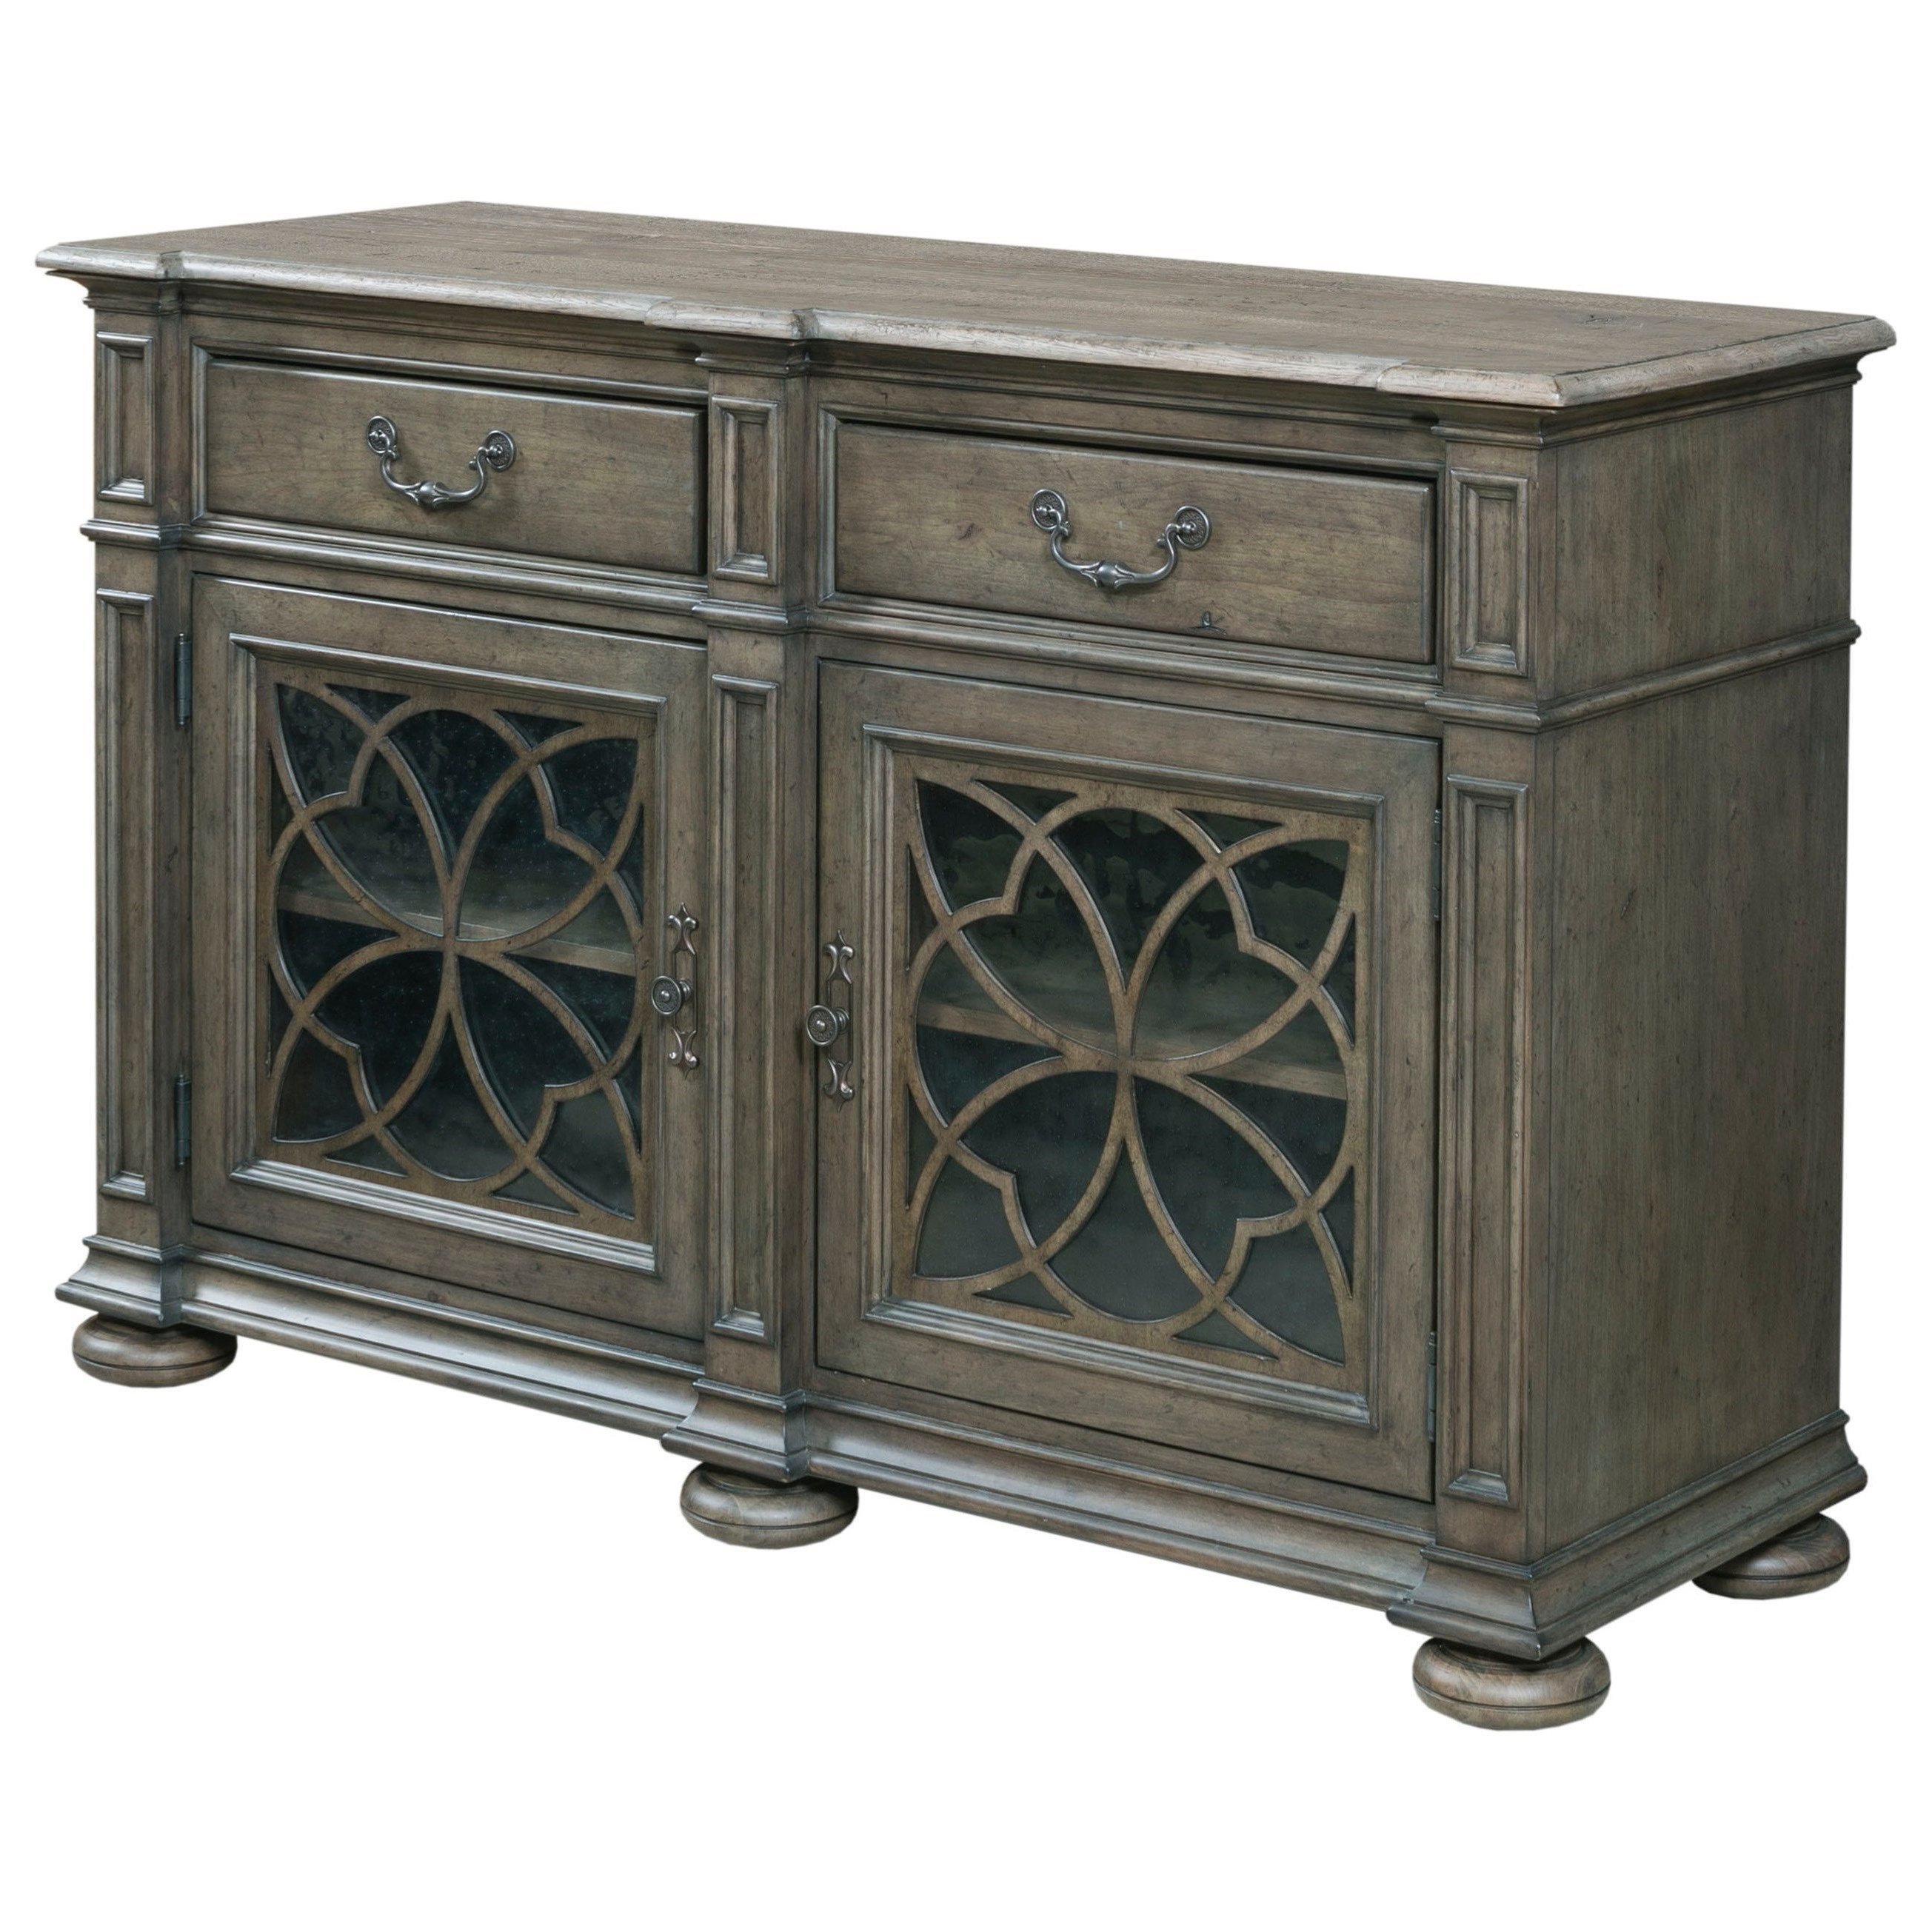 Kratz Sideboards With Regard To Current Kincaid Furniture Greyson Harper Two Door Buffet With (View 8 of 20)